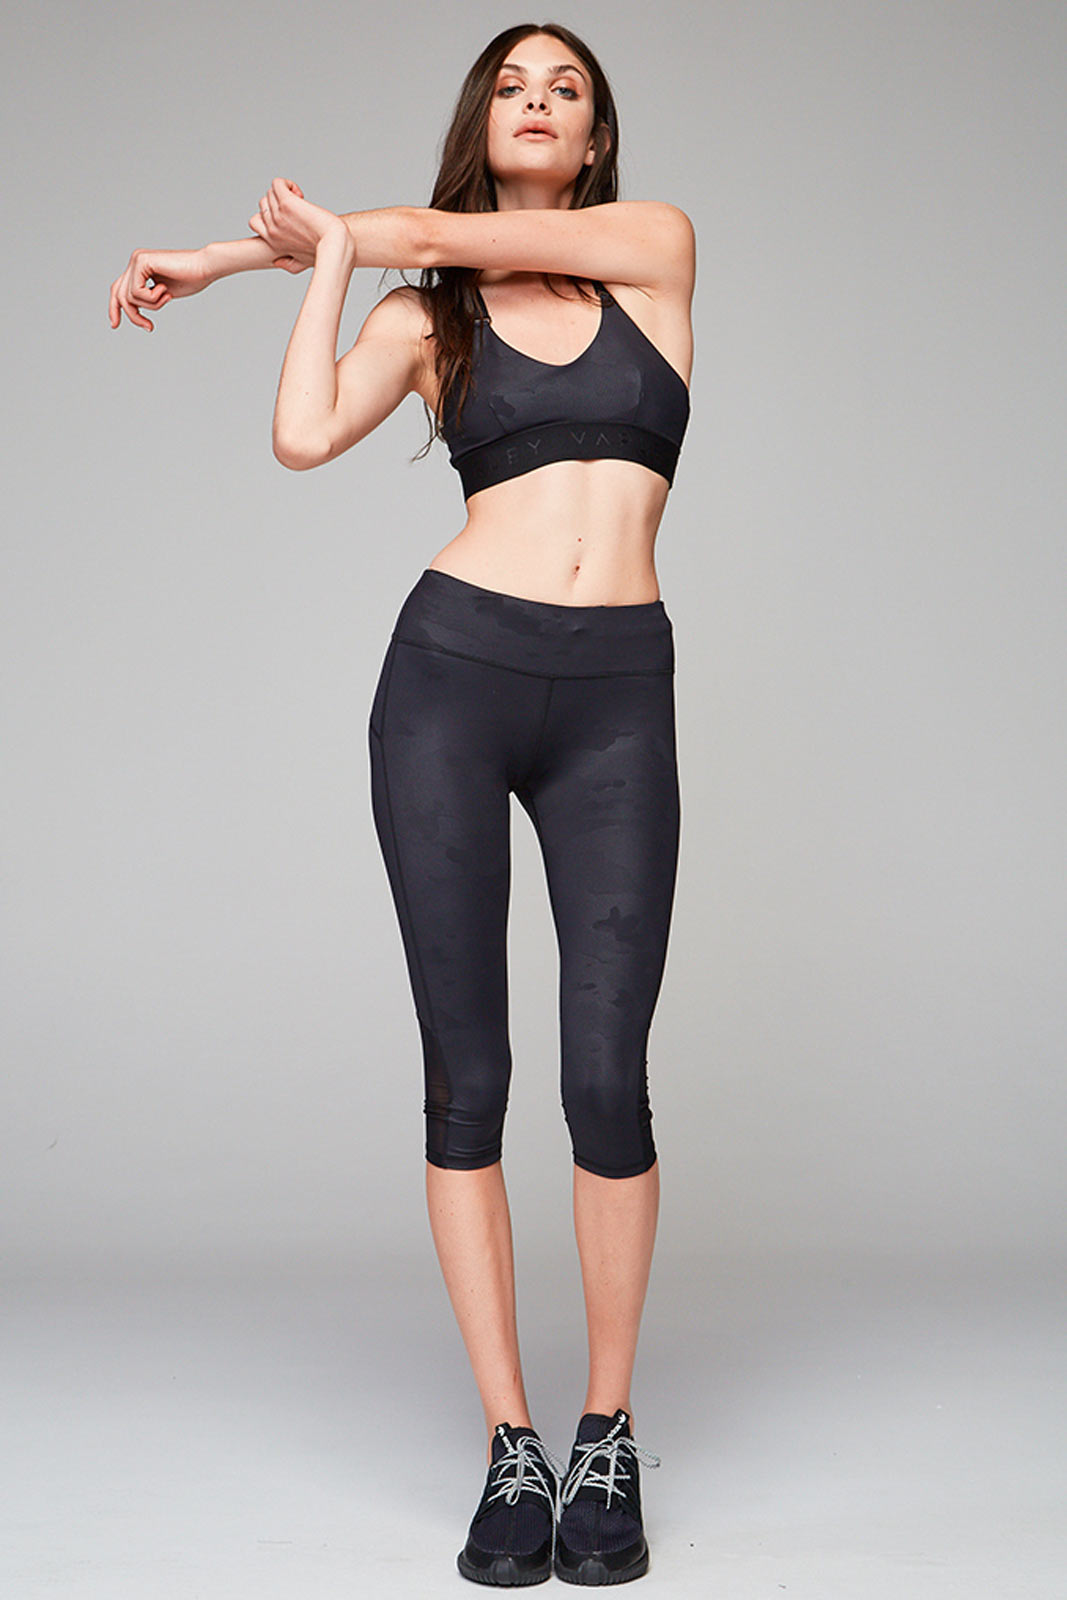 Varley Gale Sports Bra - Black Camo image 3 - The Sports Edit